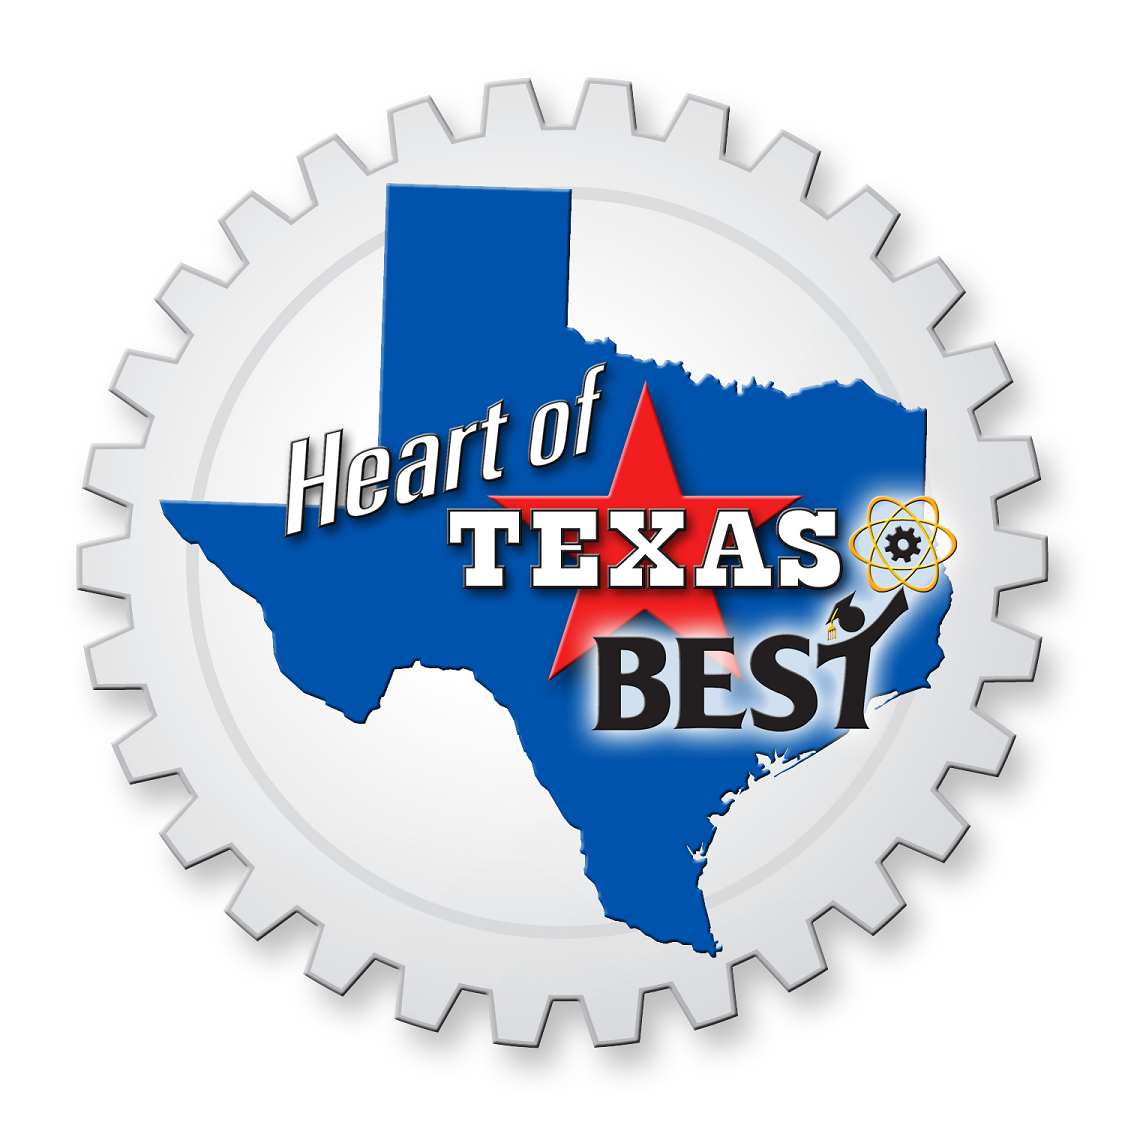 Heart of Texas BEST Robotics